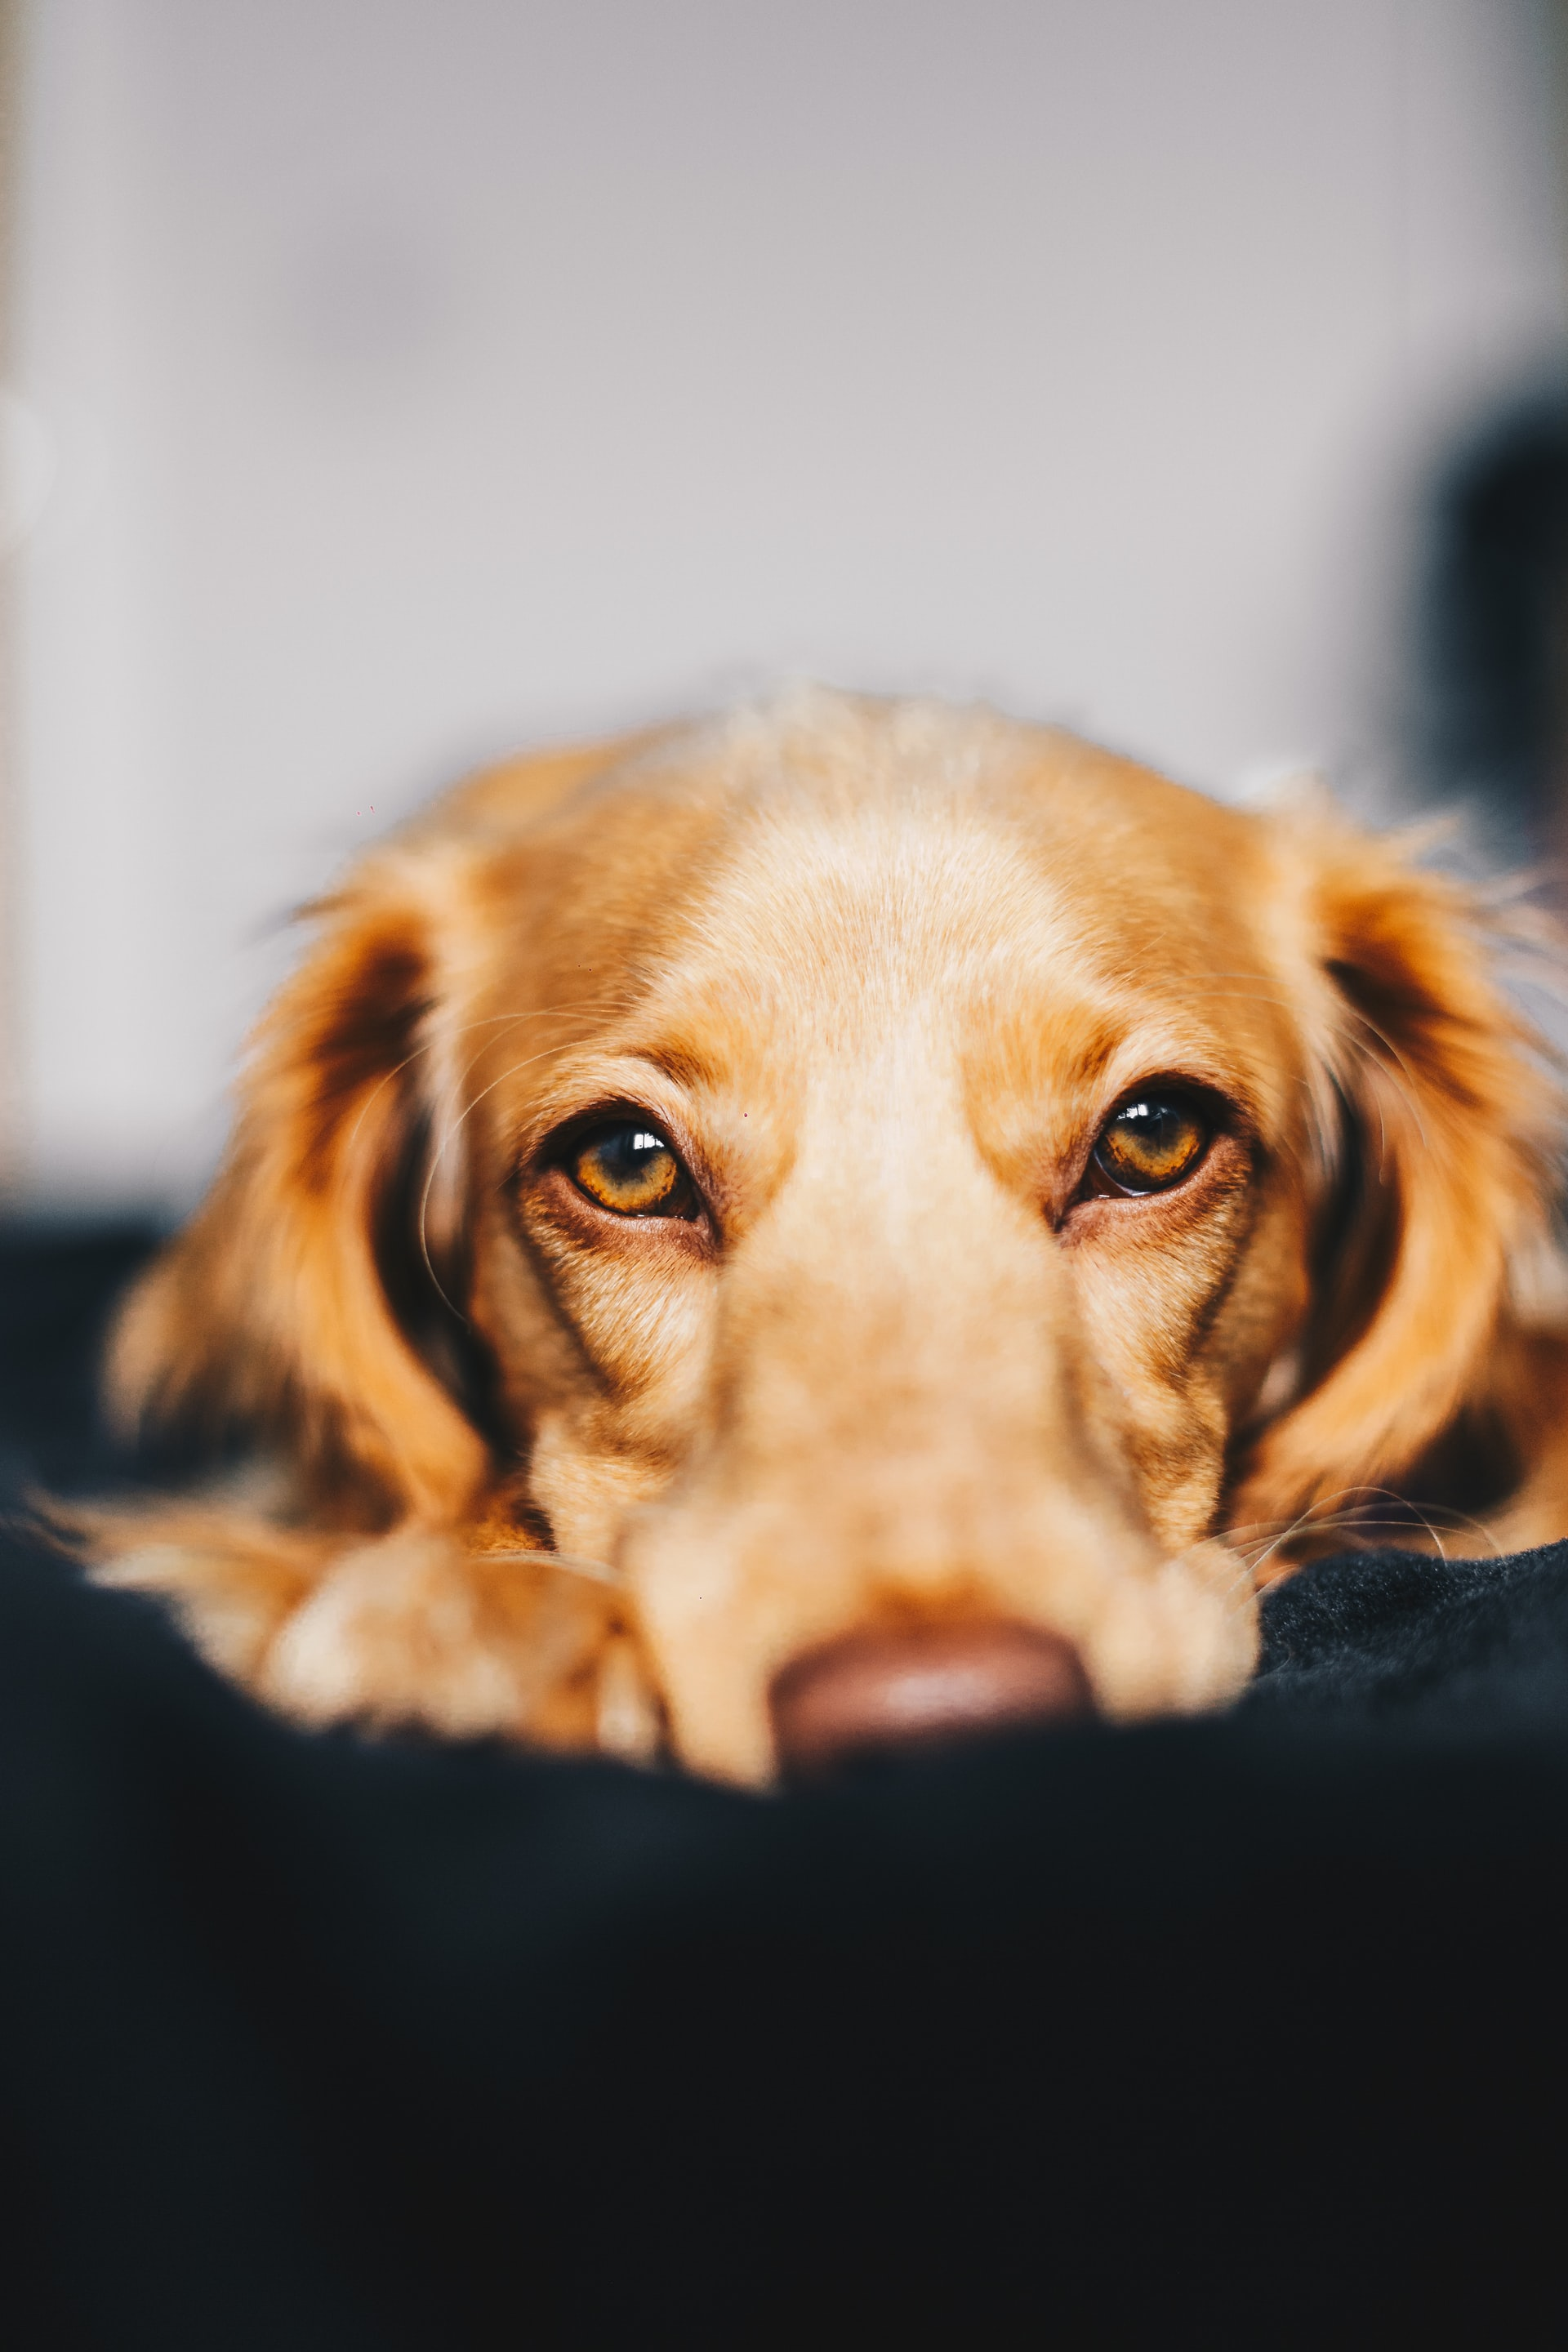 Medway Pet Owners - Keep your furry friends safe and sound this Bonfire Night